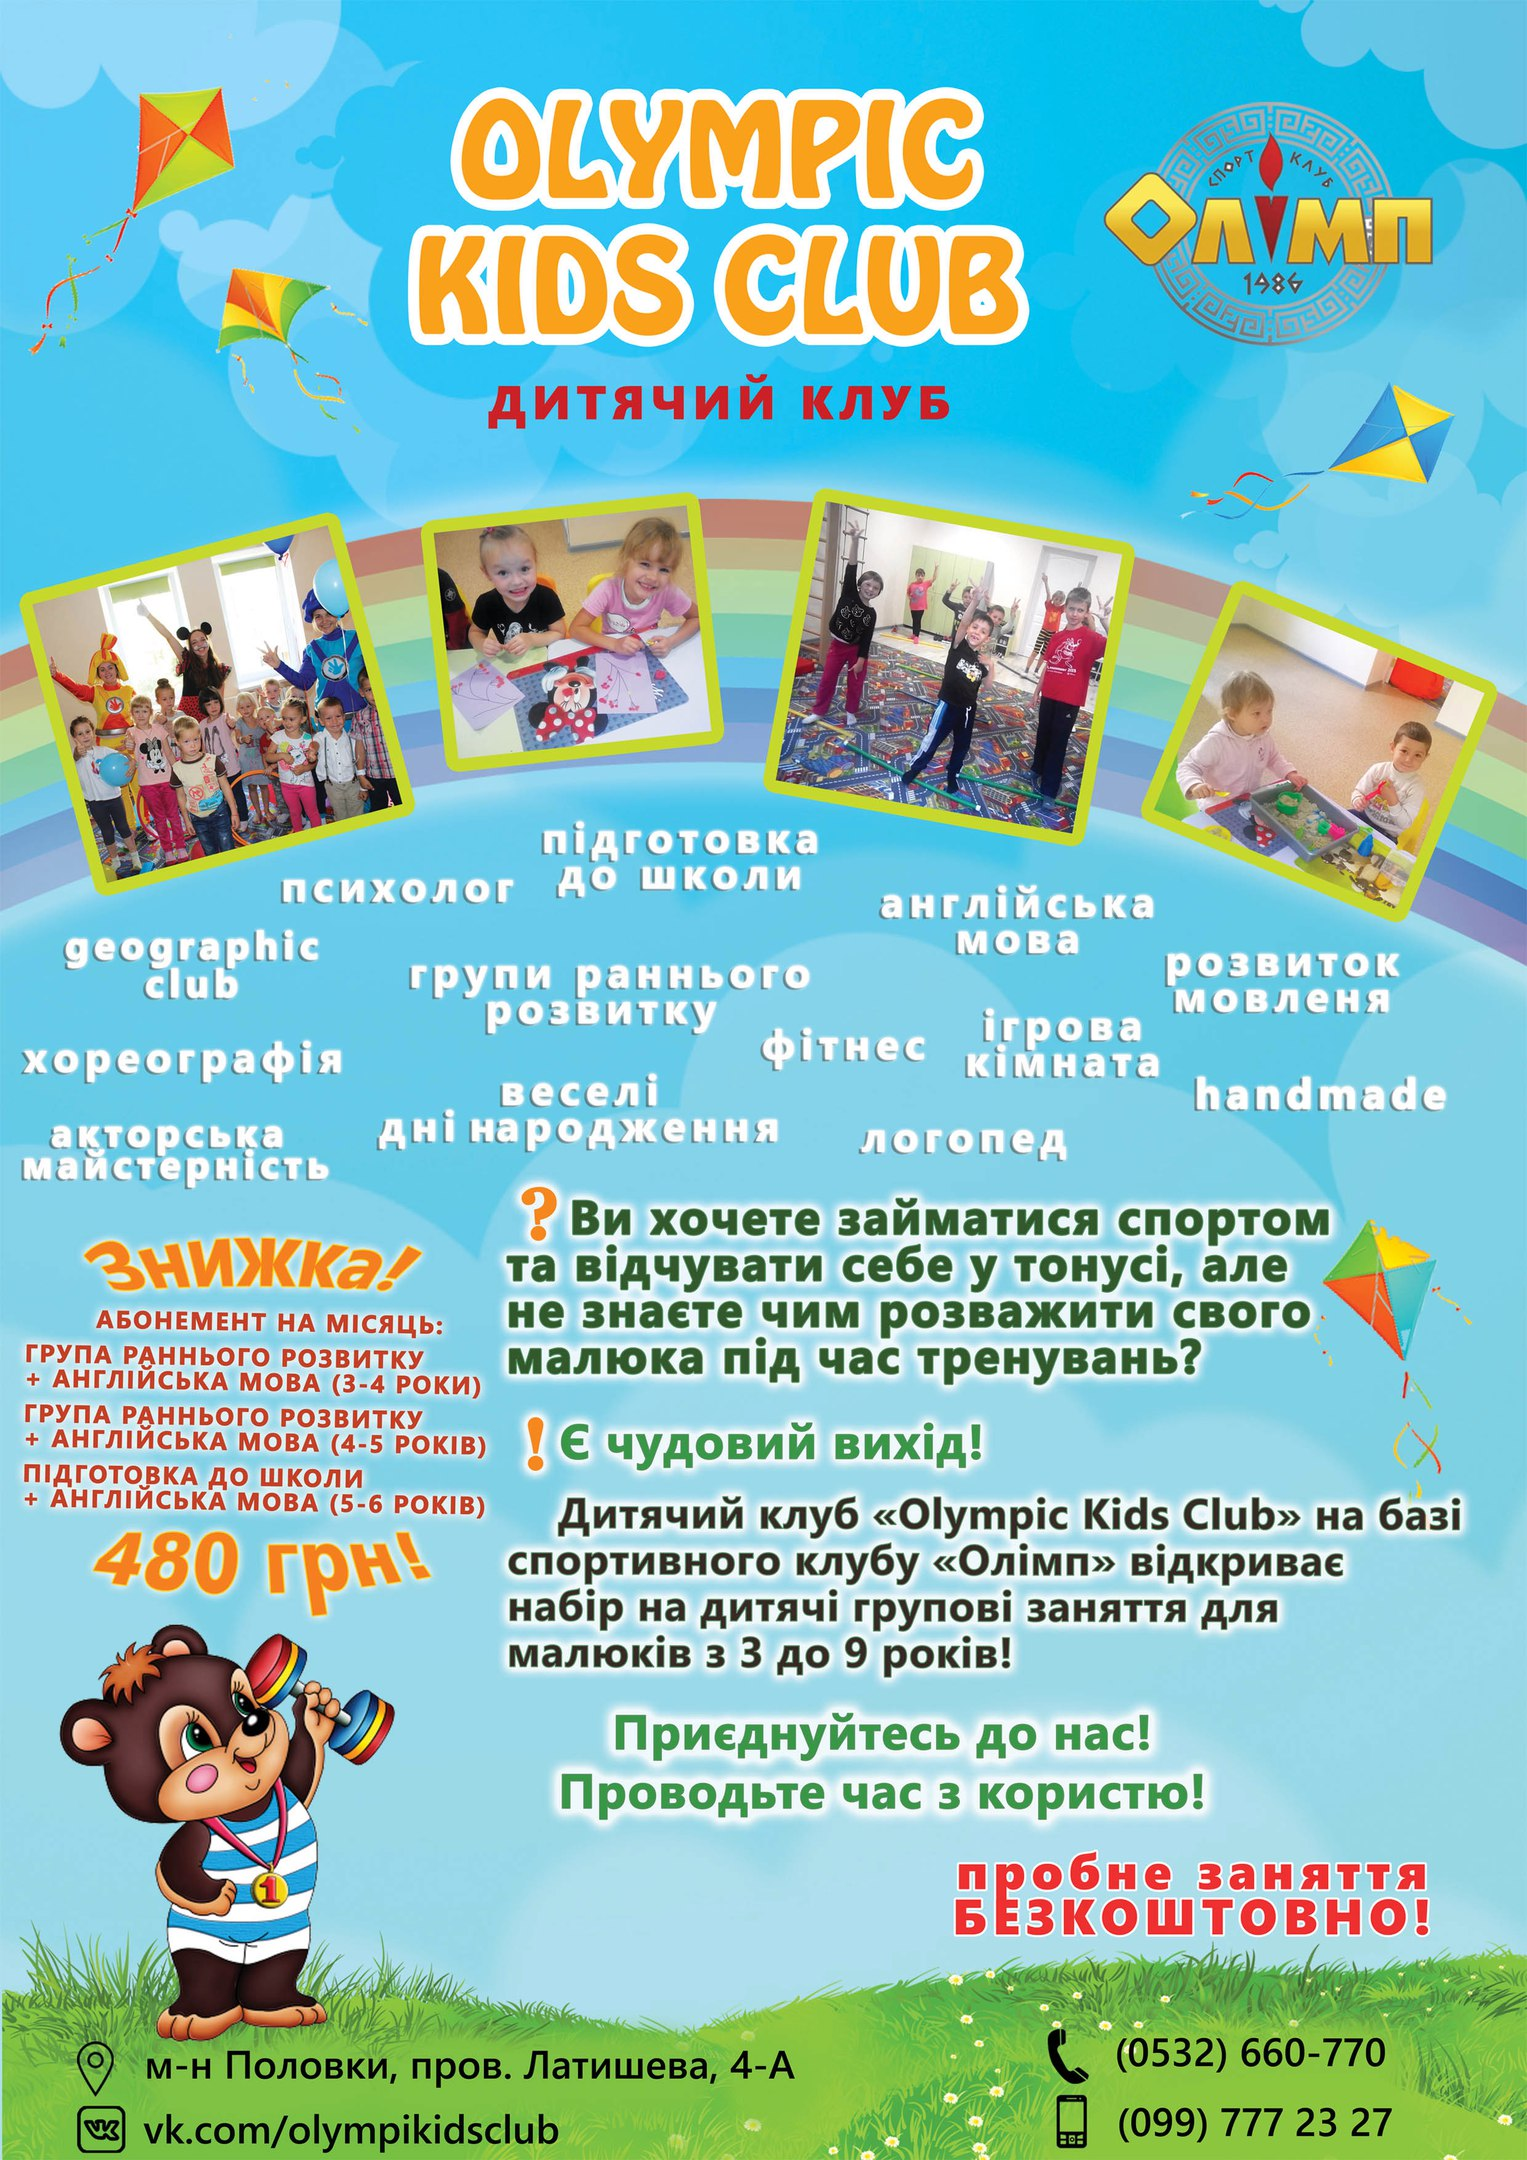 Olimpic Kids Club